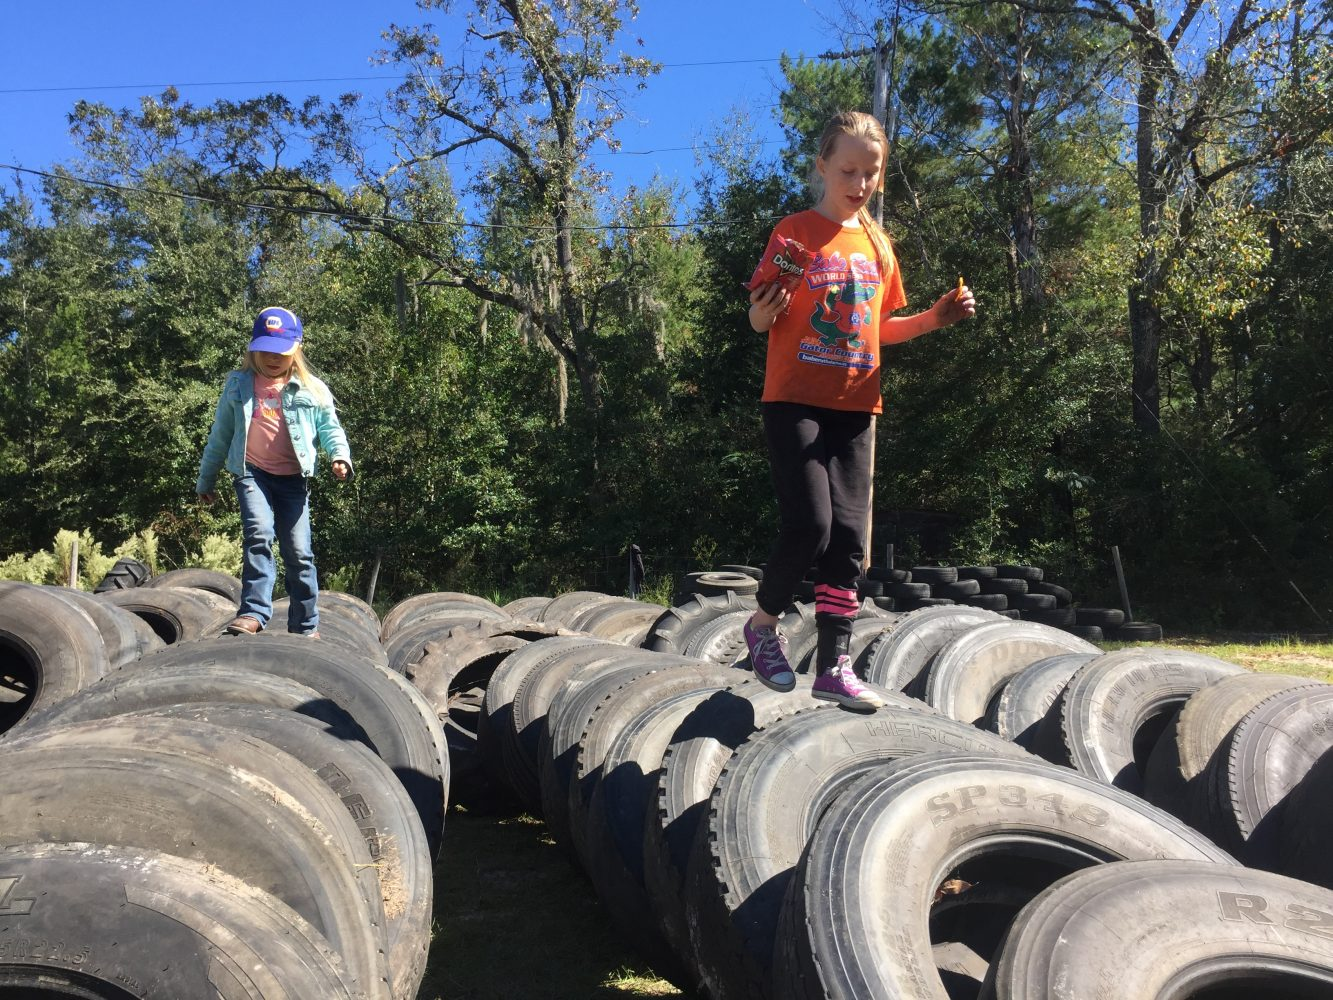 Layla, 7, (left) and 11-year-old Codi play onusedtires, stacked by size. They came out with their parents to help organize the tires for Bronson's Hot Chick's Earthship Project. (Sara Girard/WUFT)